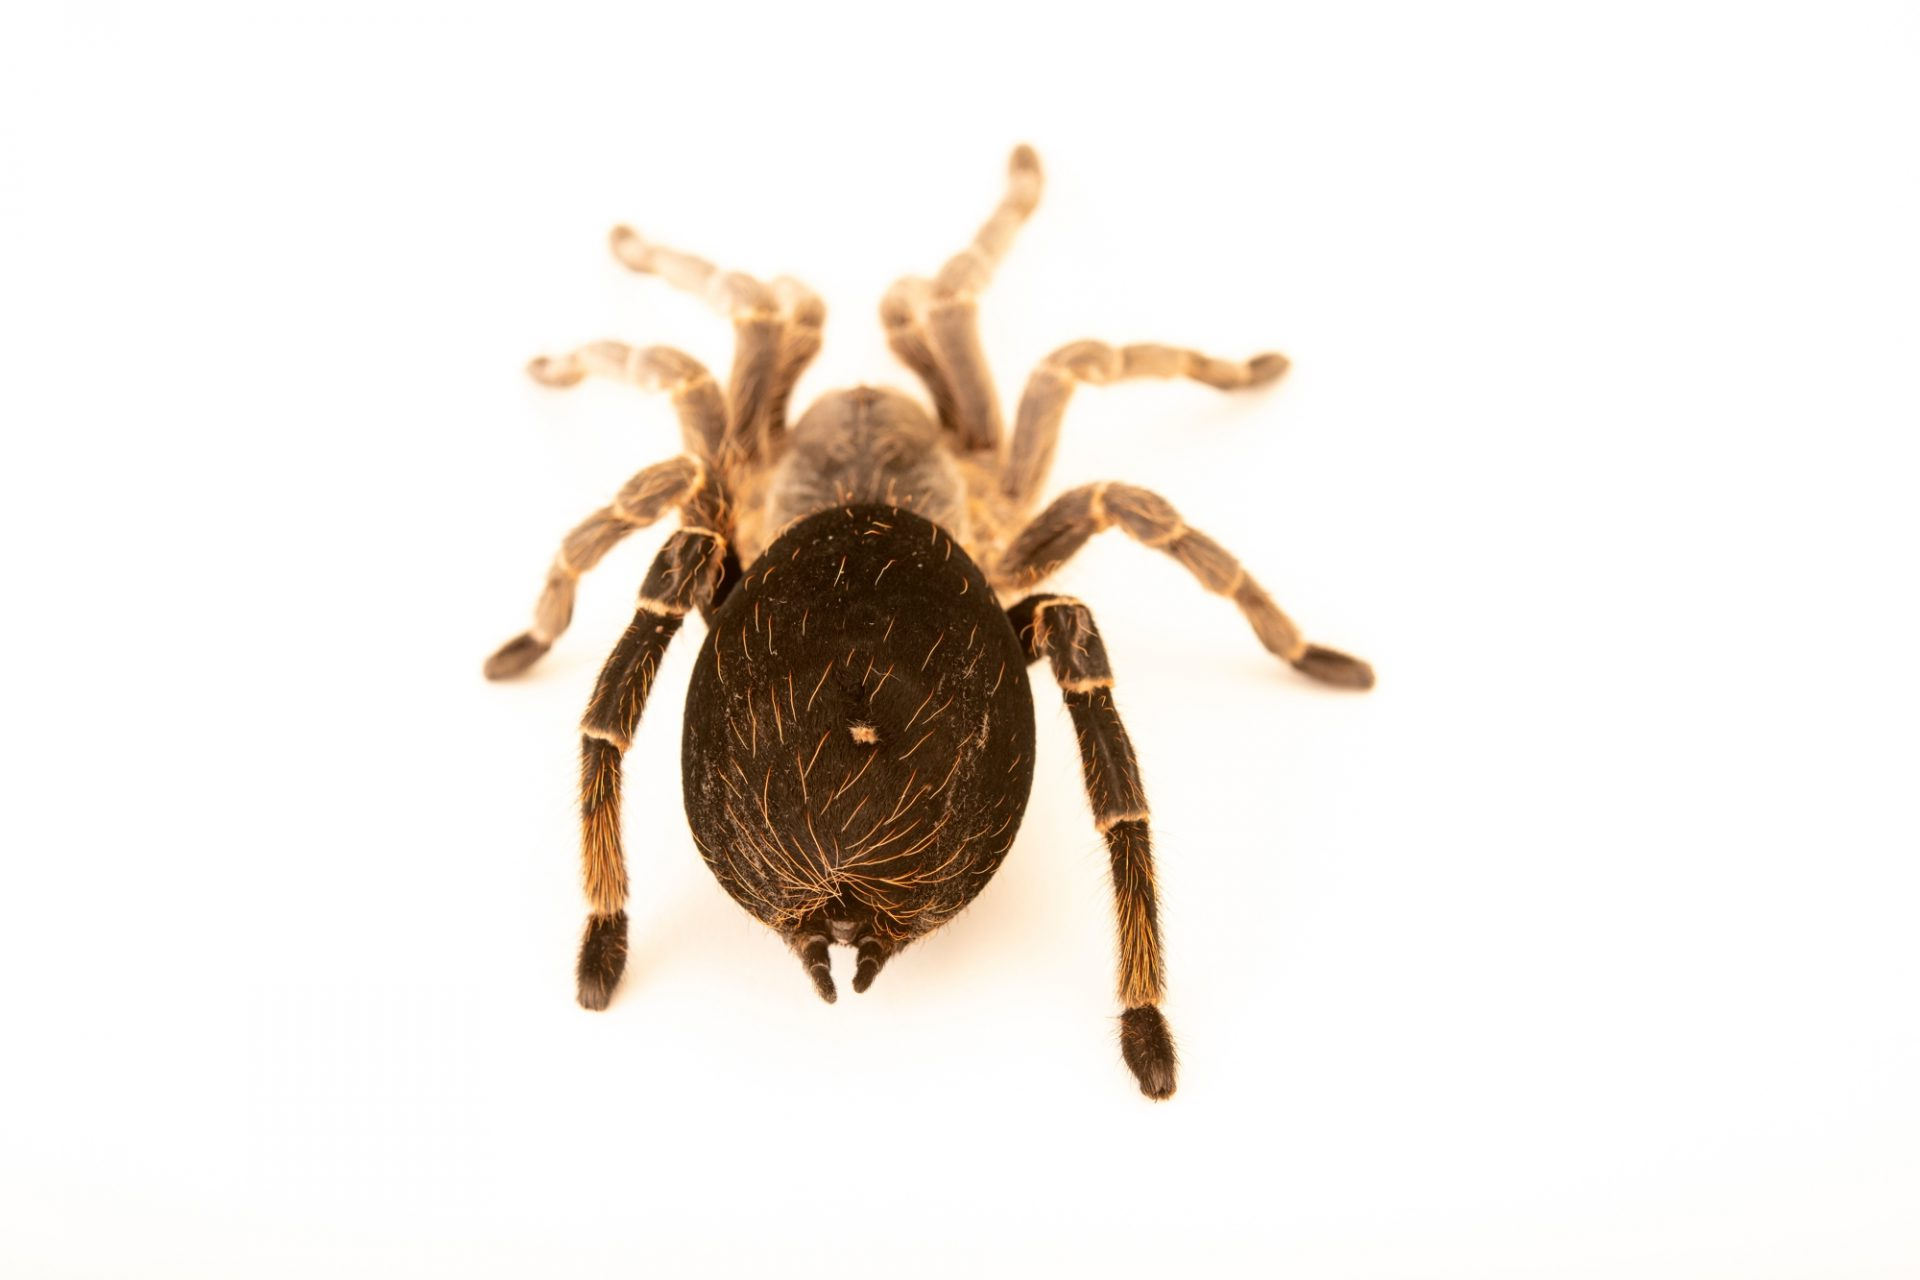 Photo: White-collared beauty or white-collared tarantula (Eupalaestrus weijenberghi) at Butterfly Pavilion in Westminster, Colorado.